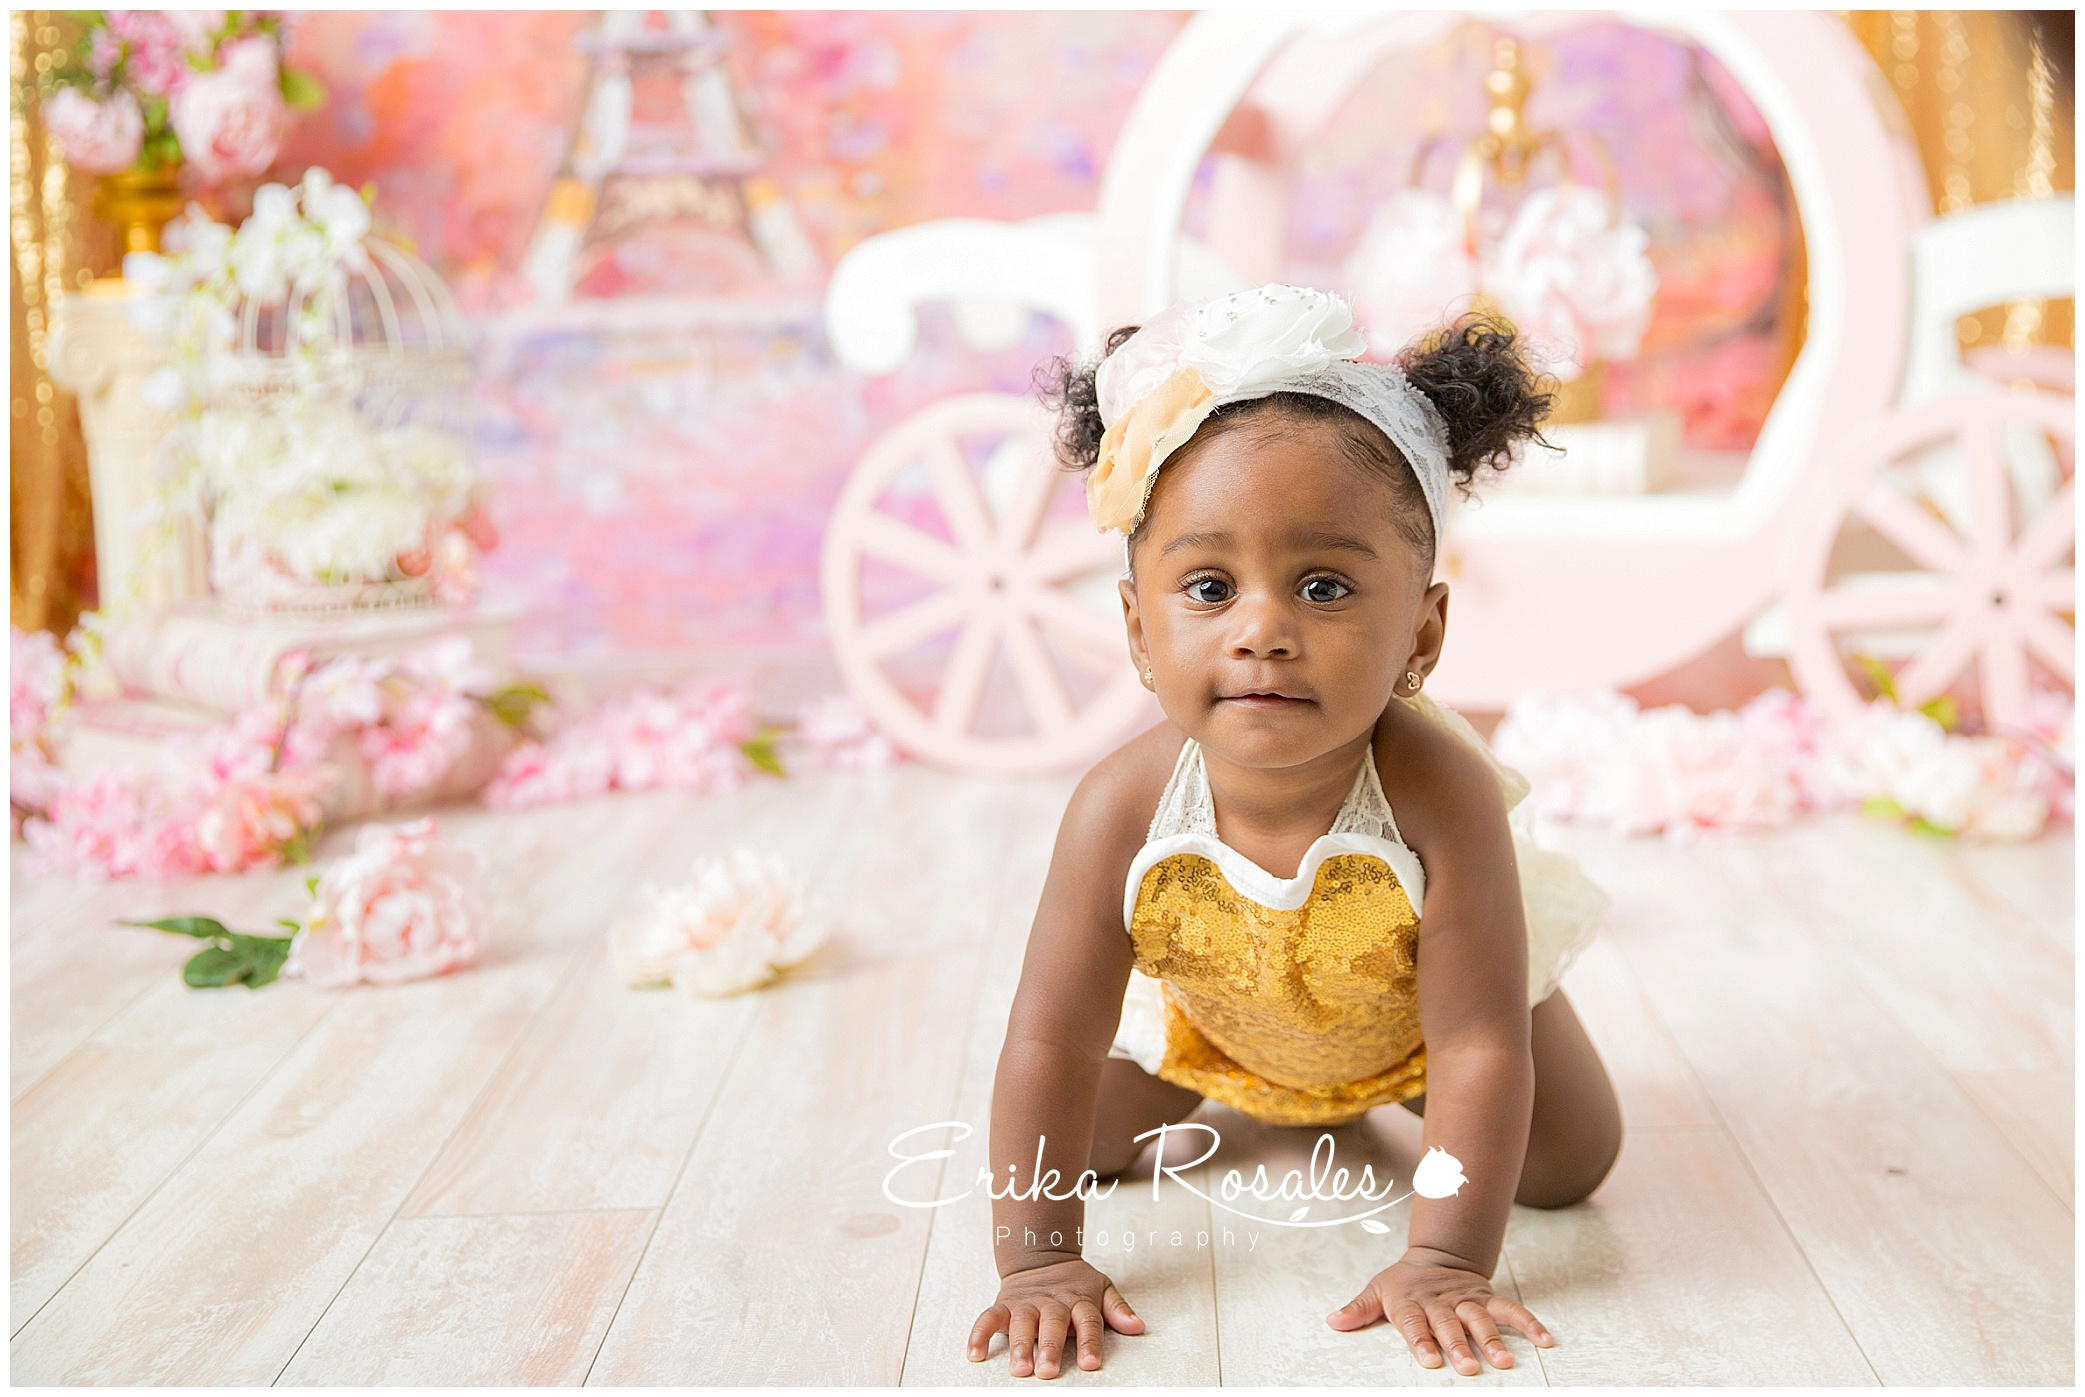 This entry was posted in cake smash session children photo session and tagged baby girl birthday baby girl photo session baby girl studio photo session